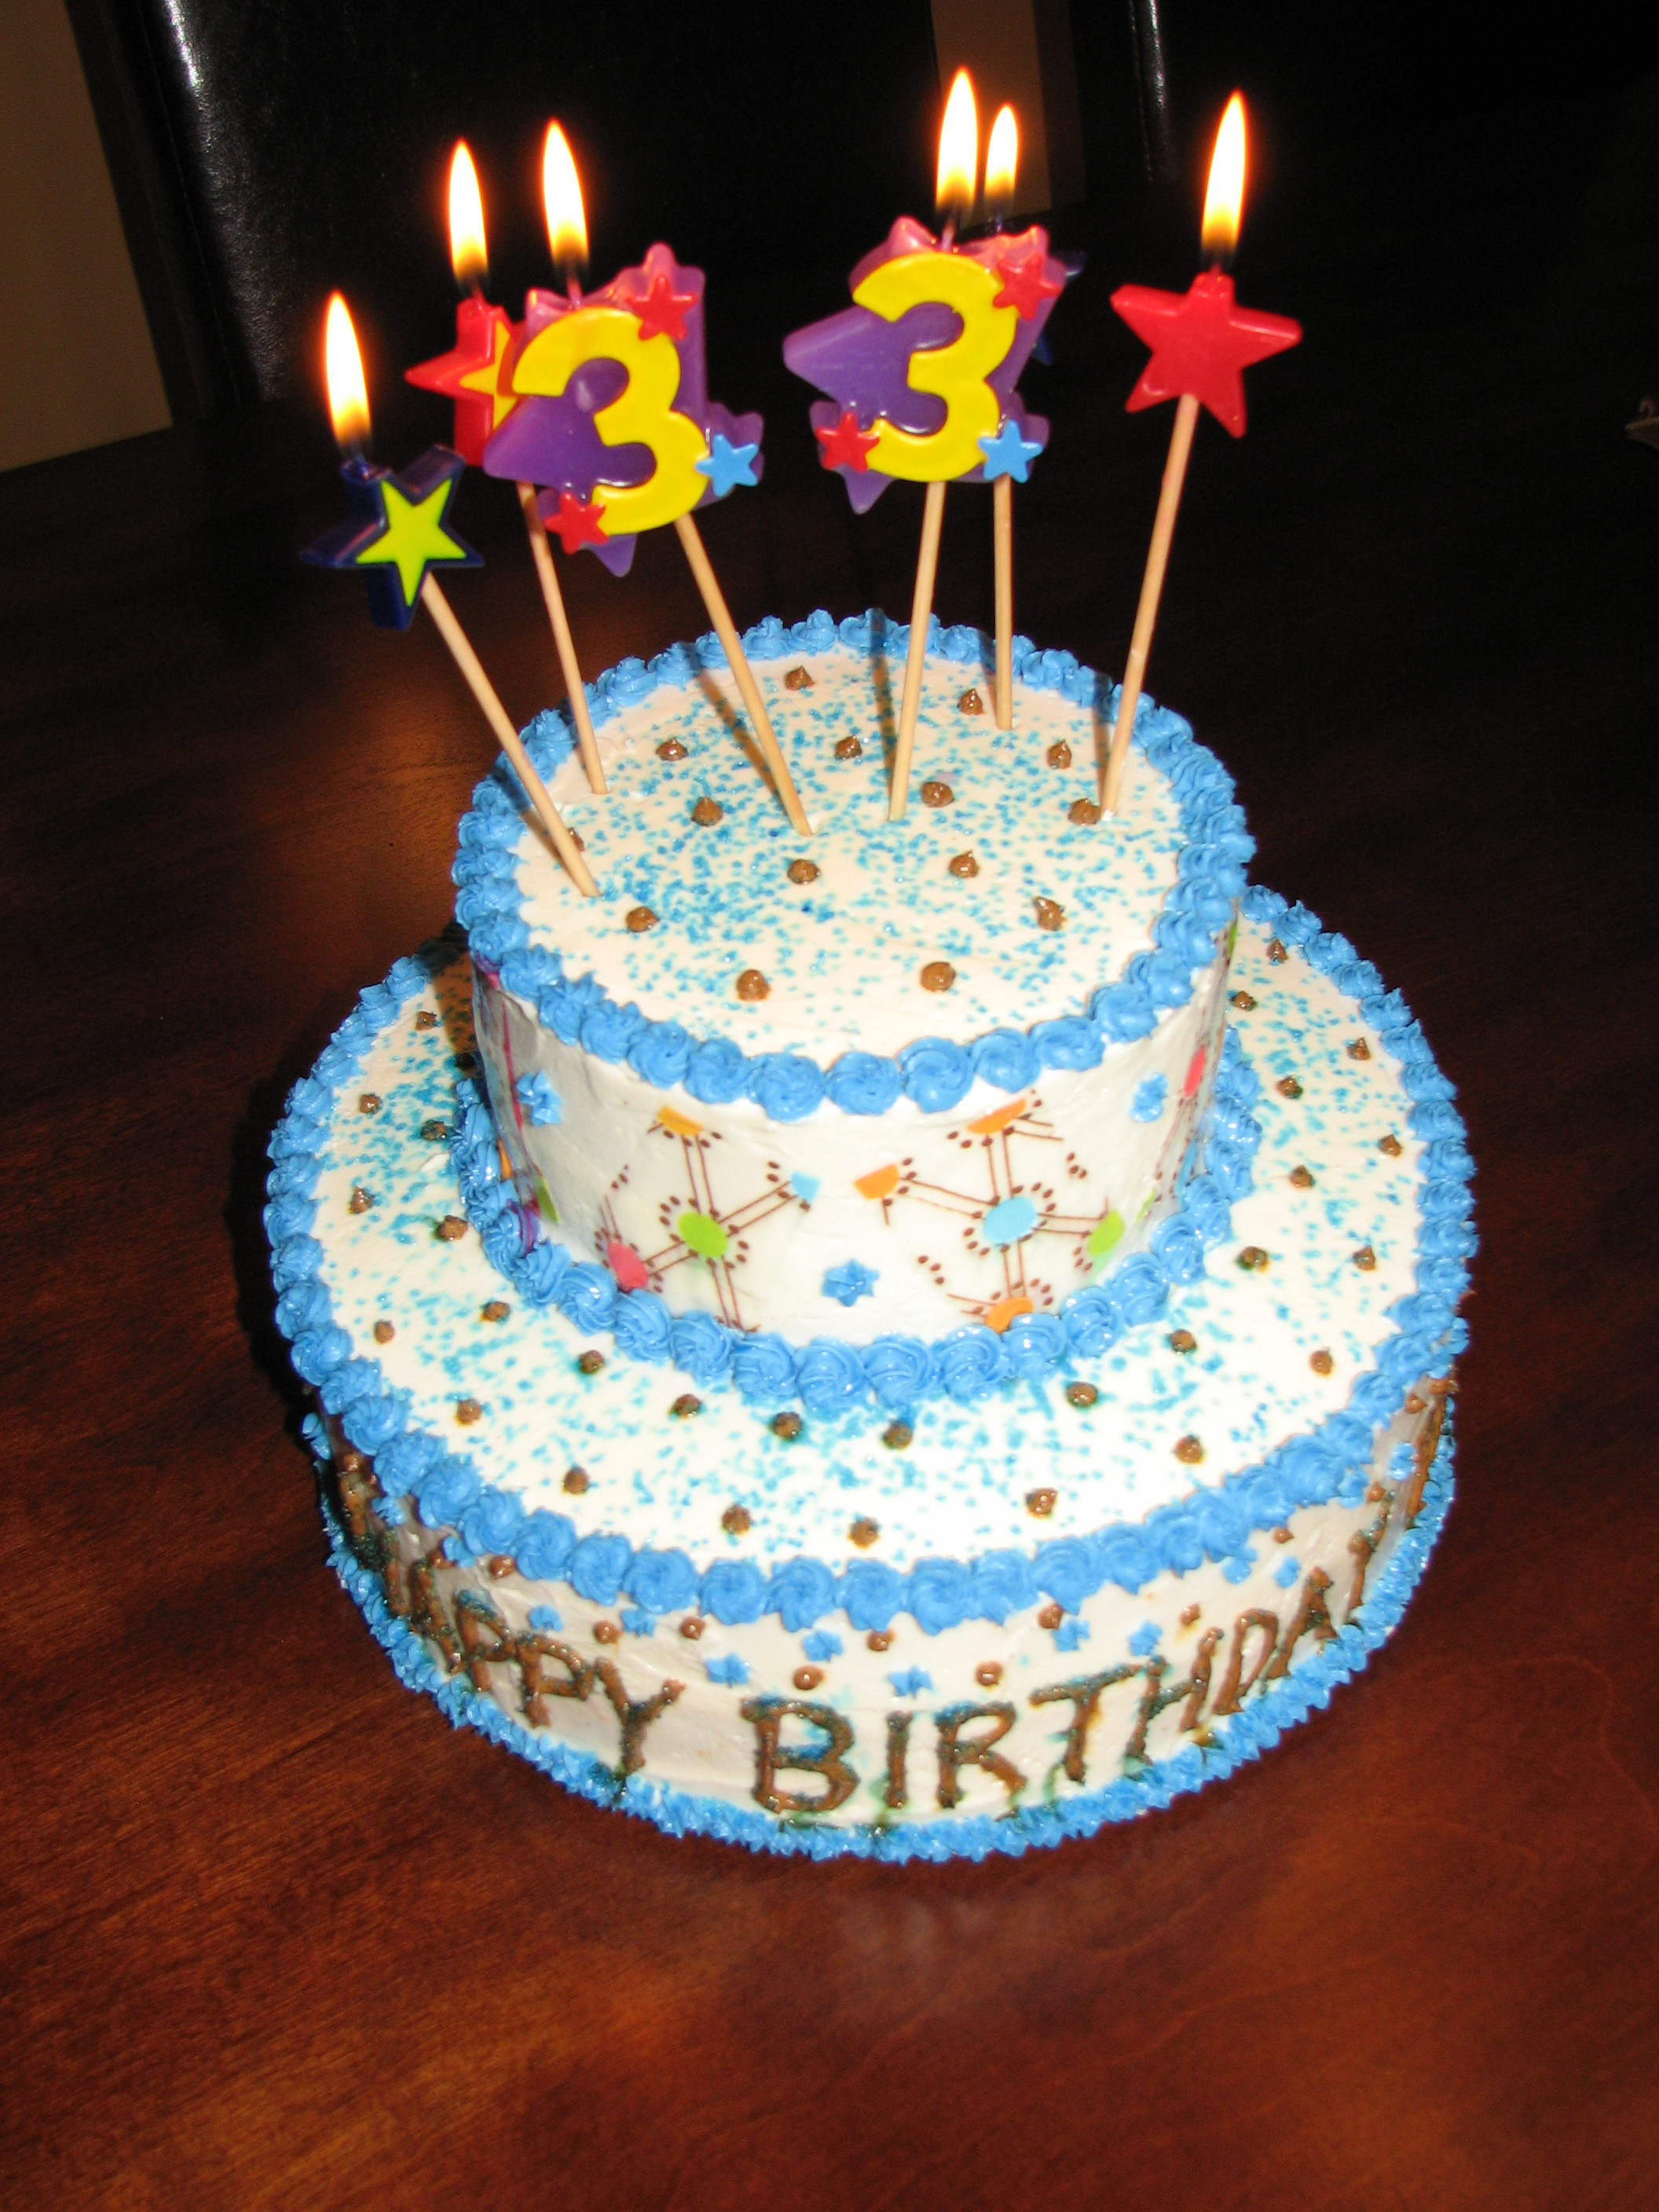 Best ideas about Two Tiered Birthday Cake . Save or Pin 2 Tier Birthday Cake Now.